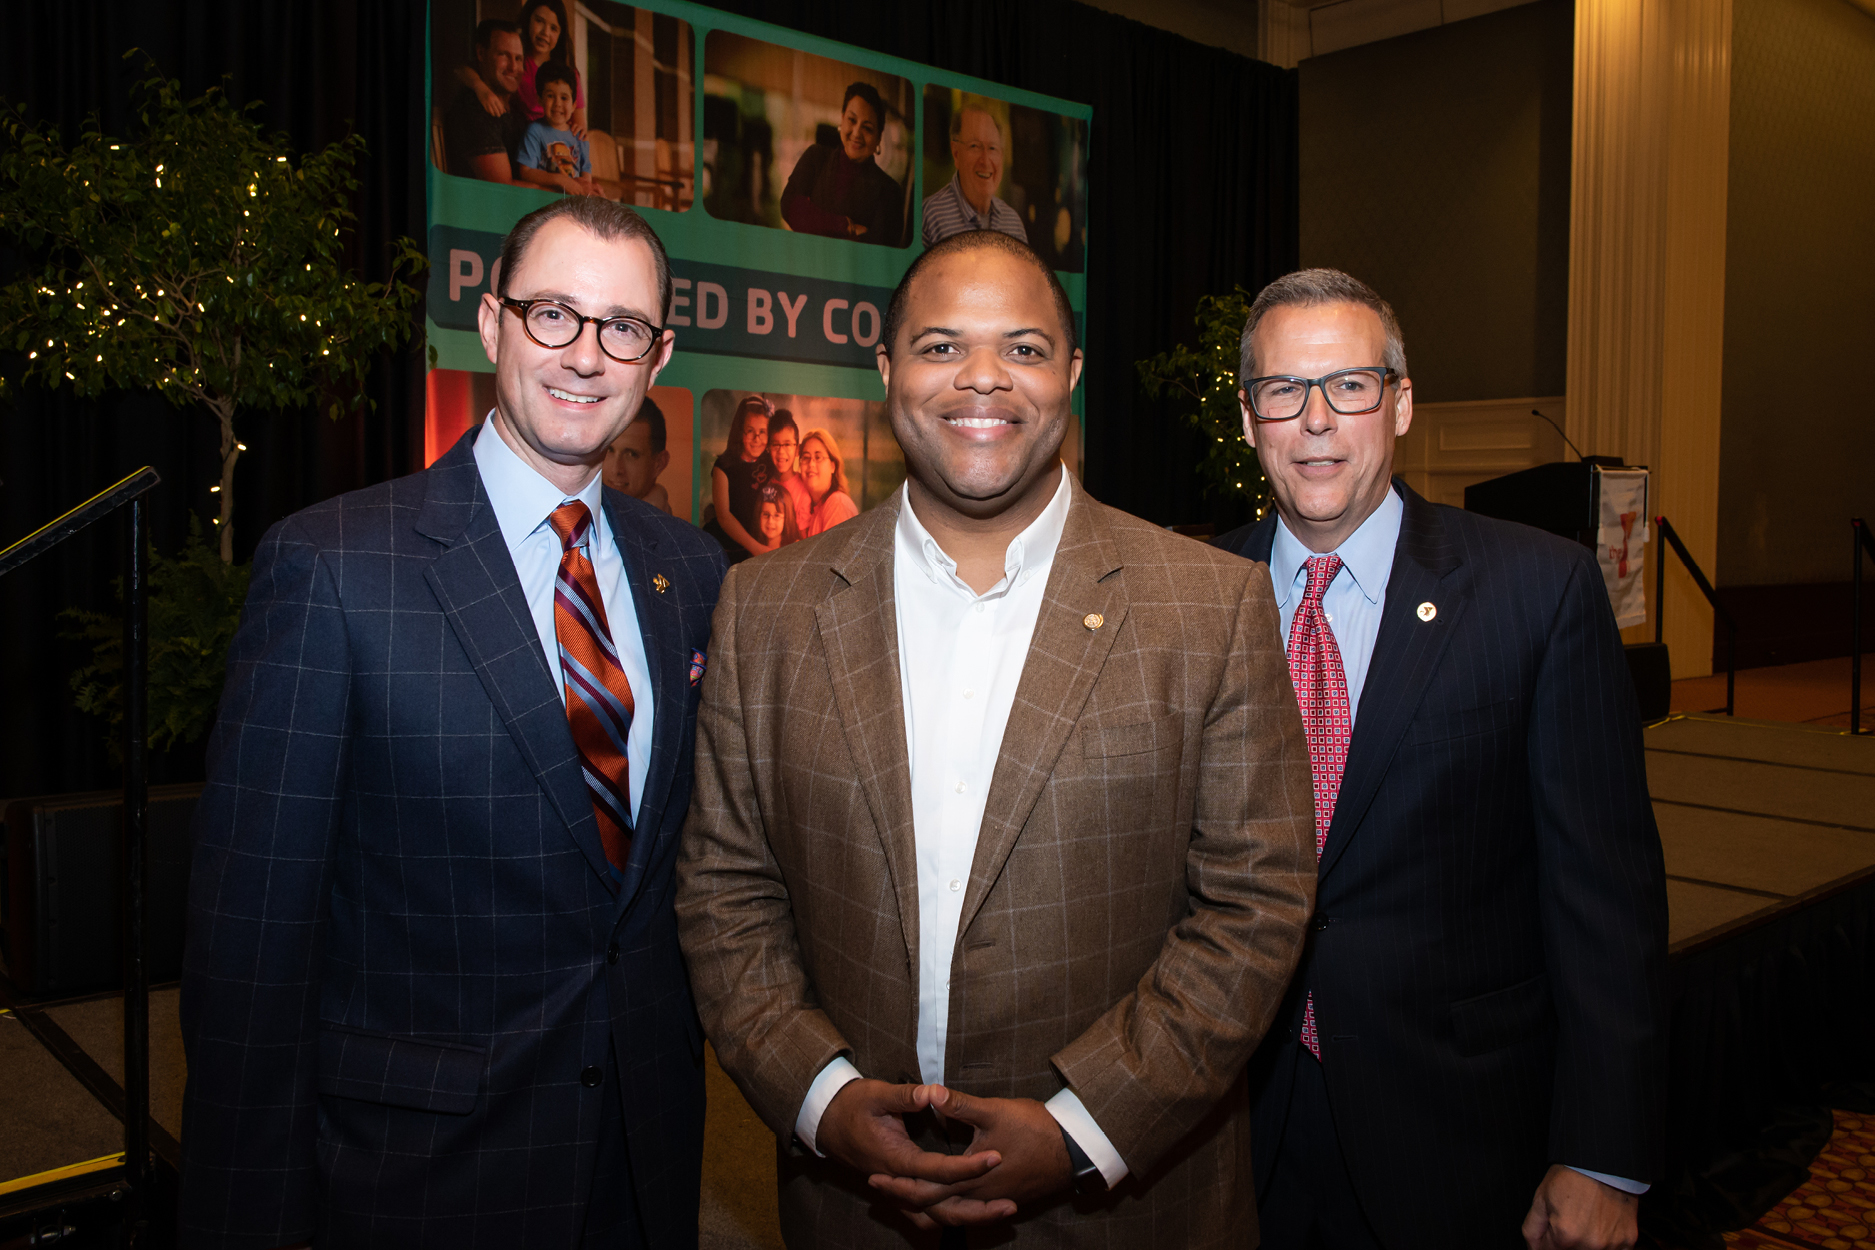 Creighton Webb, Mayor Eric Johnson, and YMCA Ceo Curt Hazelbaker smiling